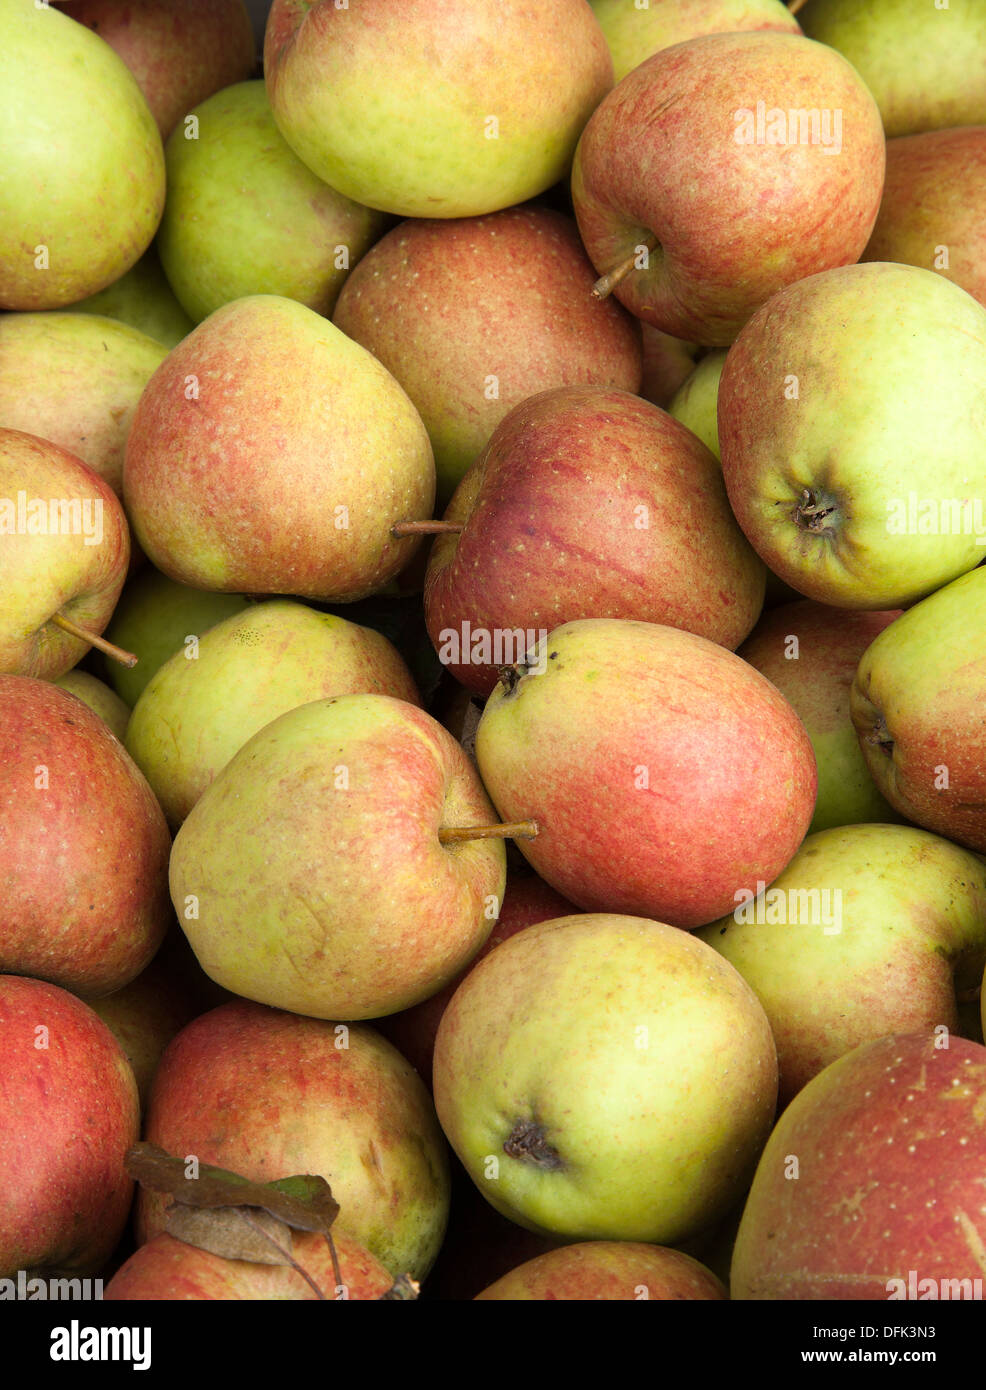 Imperfect Orchard fruits of Autumn_Crispin apples_ Mutsu (or Crispin) is a high quality apple from Japan - Stock Image